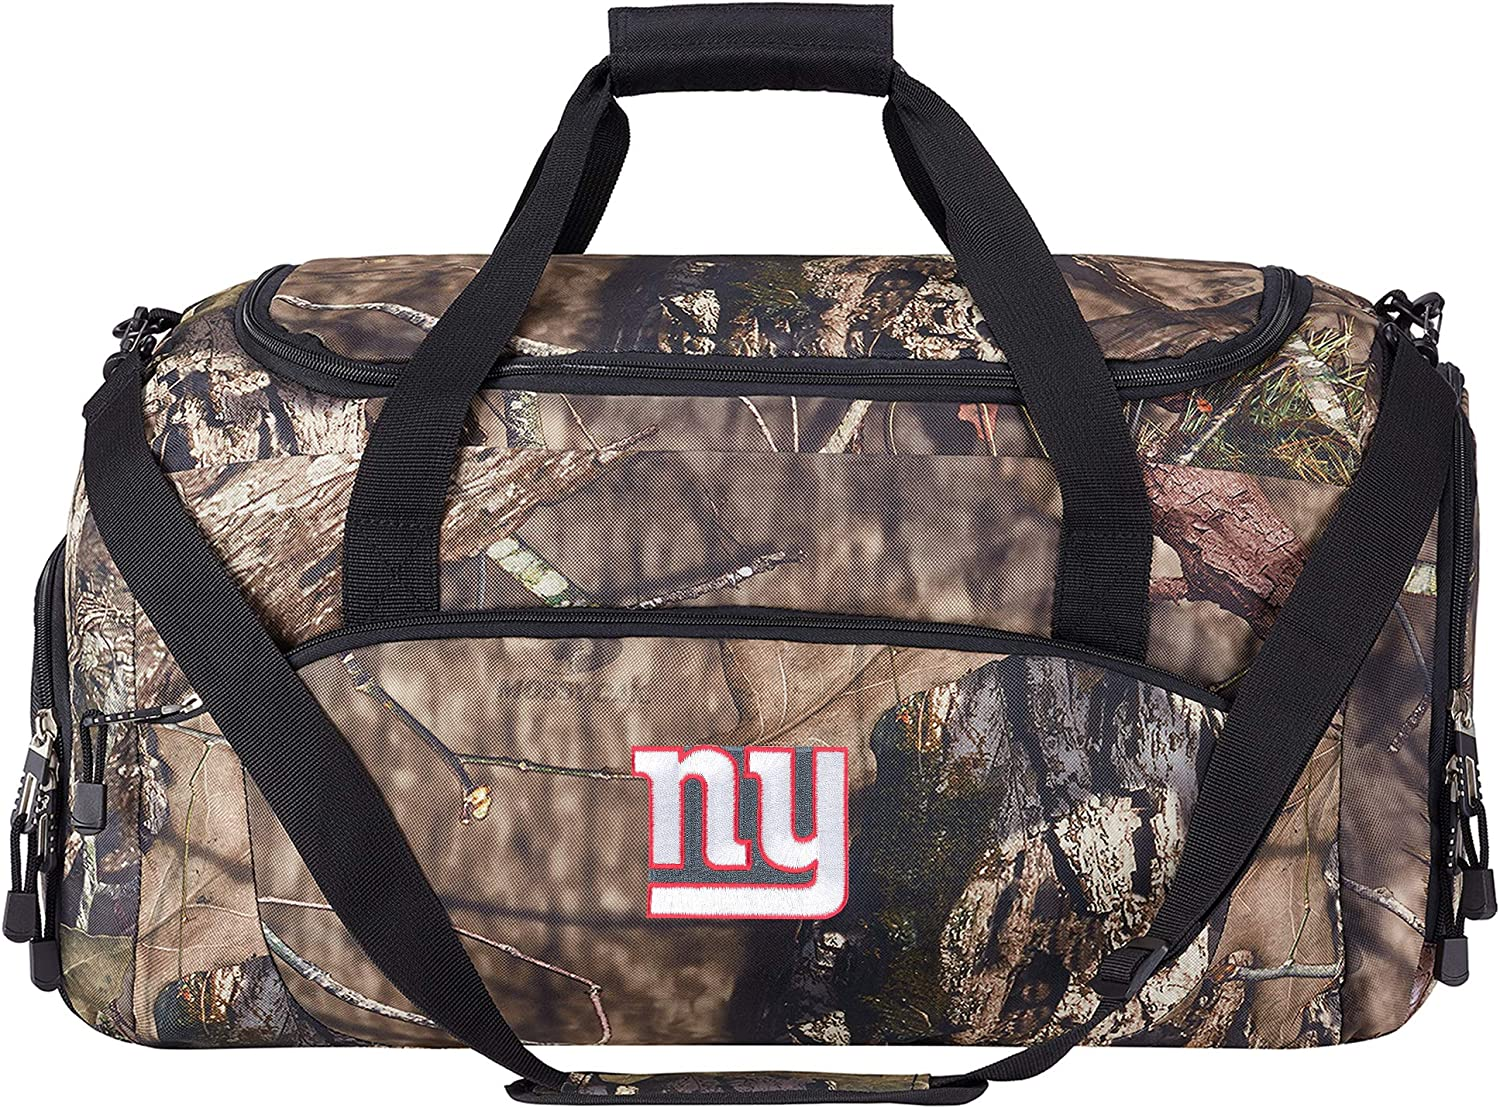 Officially Free shipping on posting reviews Licensed Genuine Free Shipping NFL